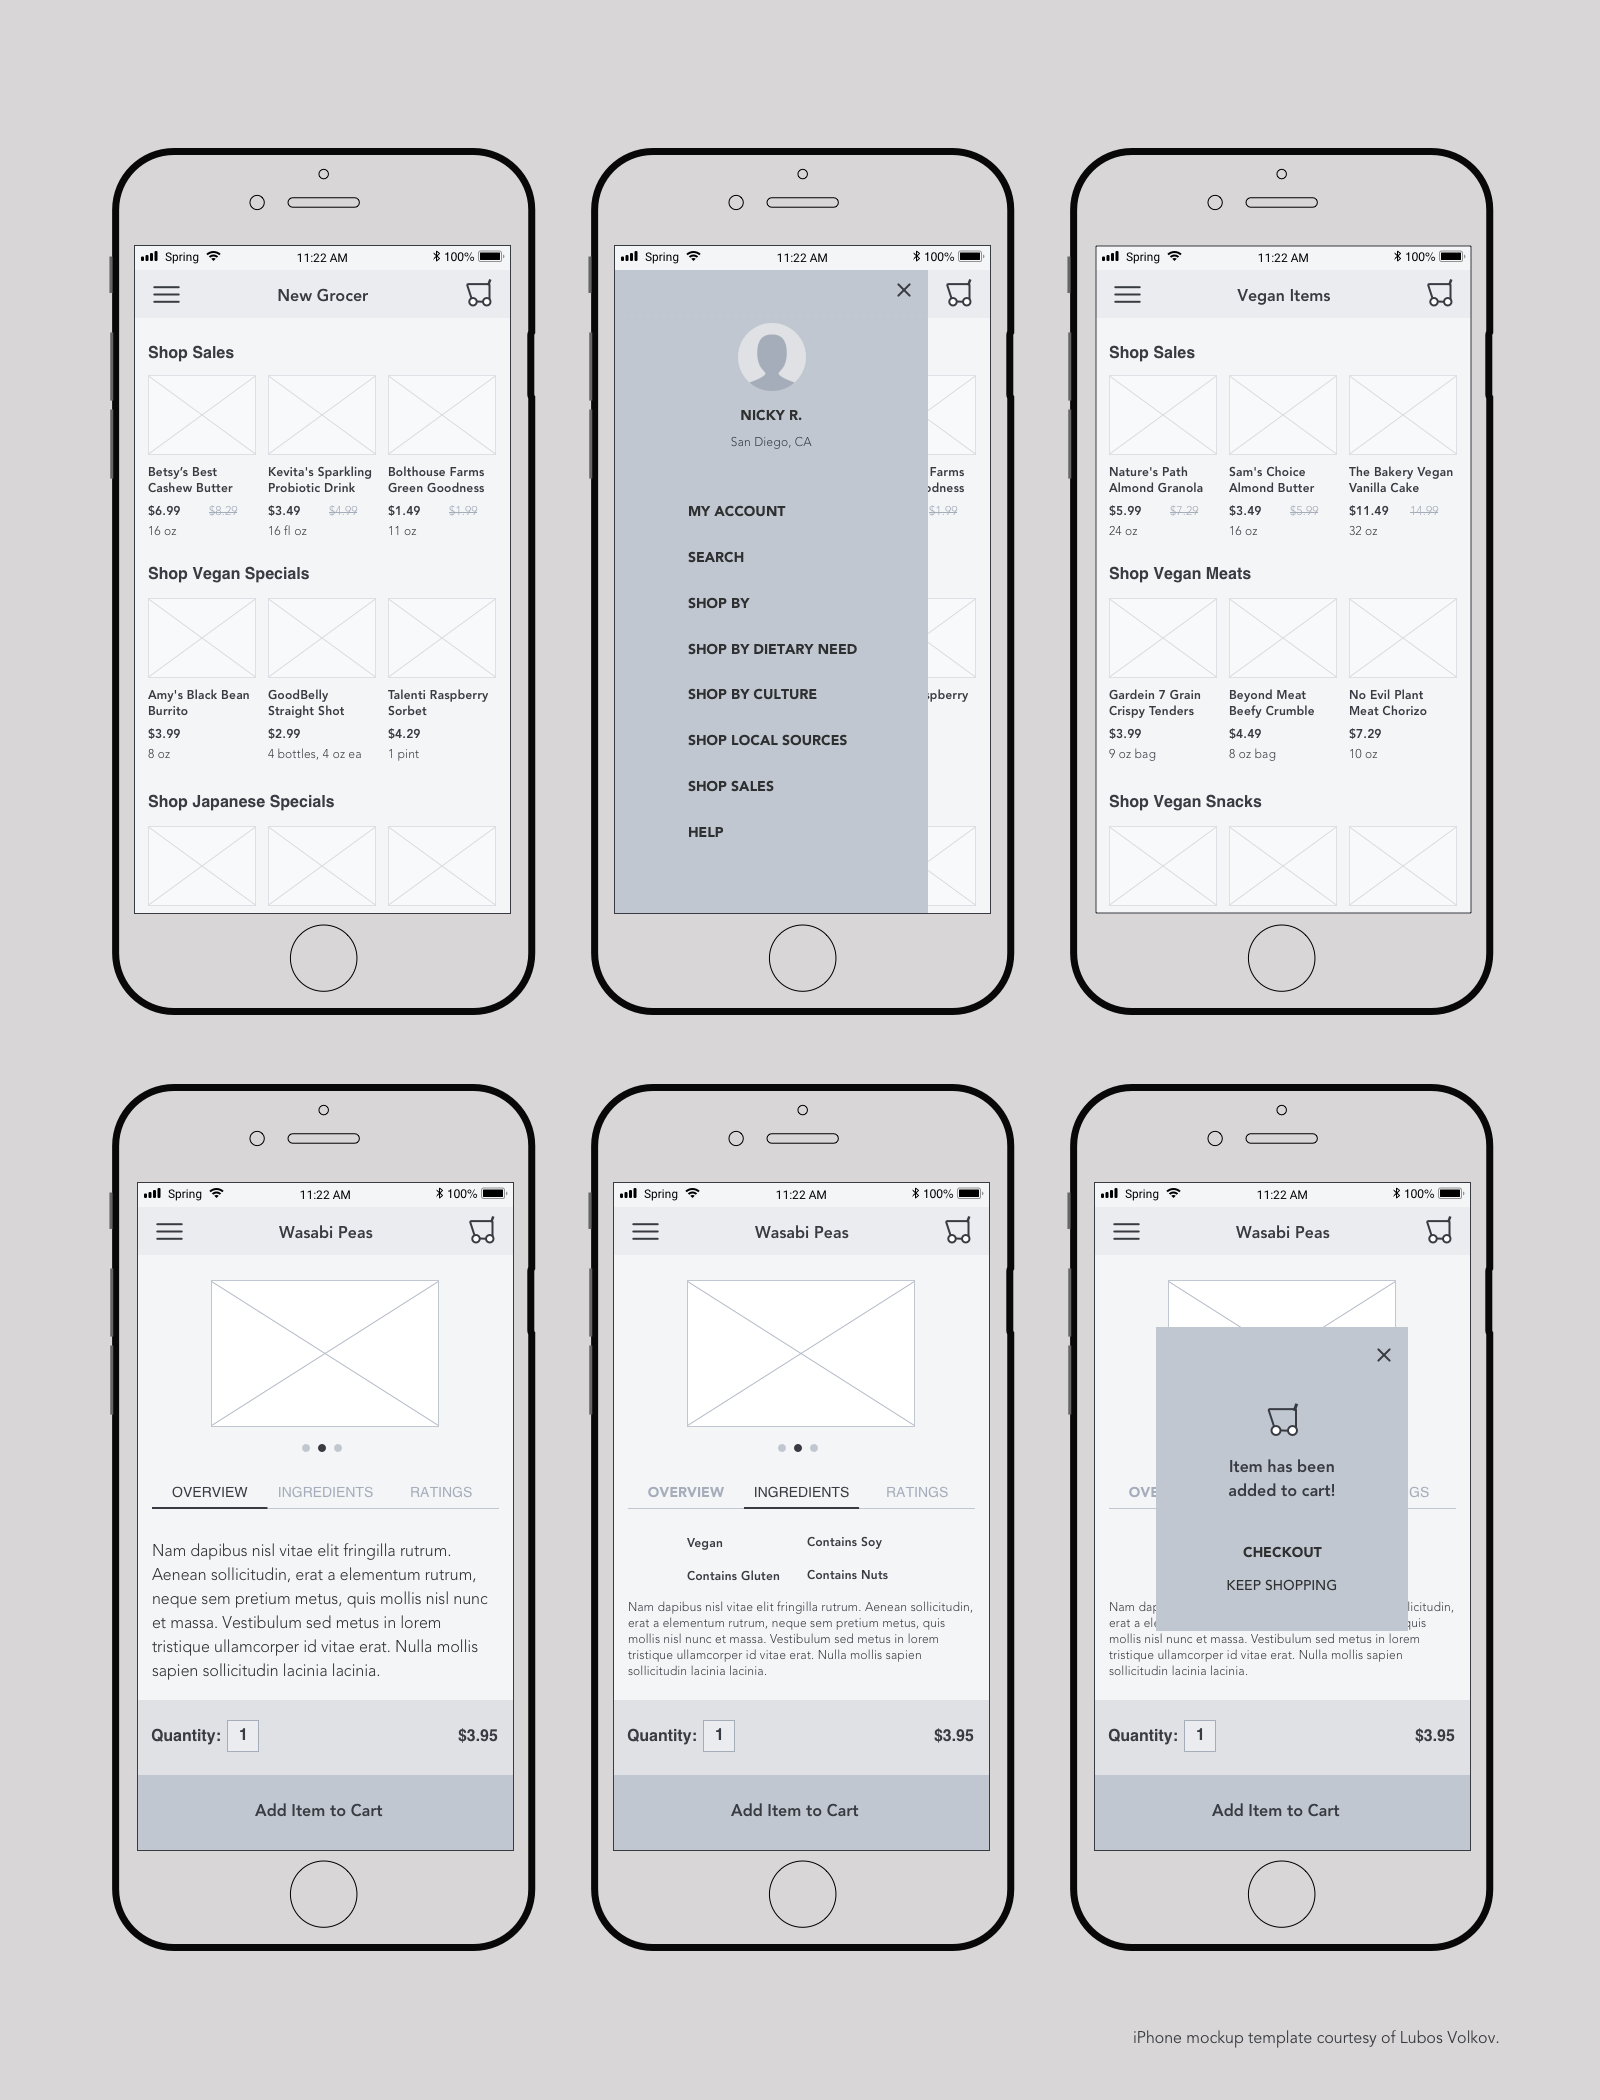 Set of six mid-fidelity mobile wireframes depicting home screen, product category screen, and product detail screens.